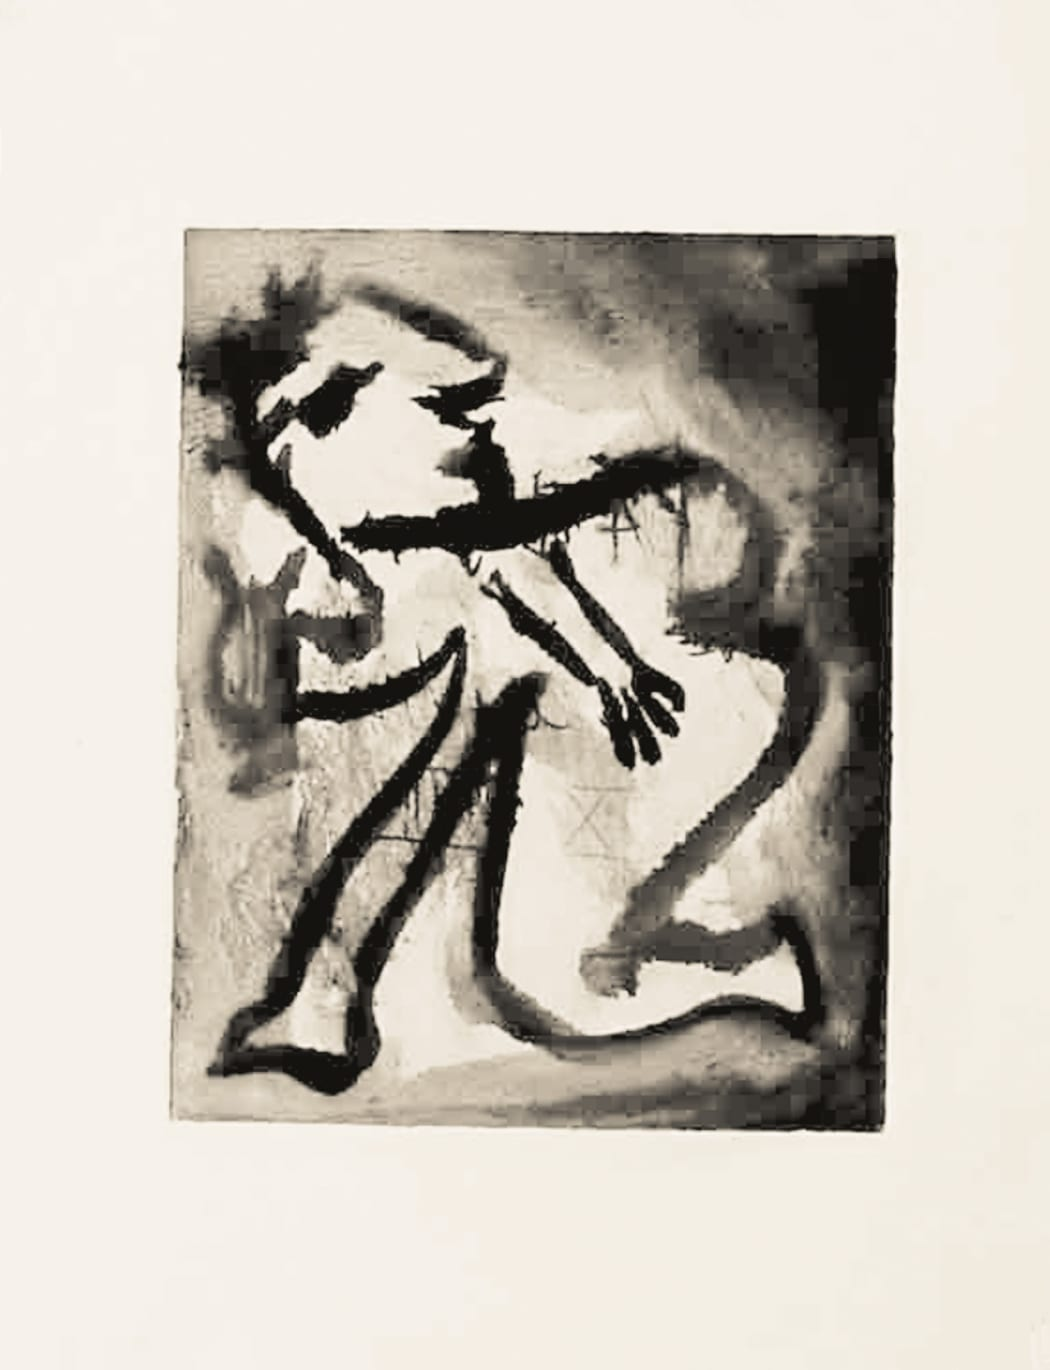 Orphée, ou le poète. II Ba541, 1933 (February 3, Paris), Monotype, 9 7/8 x 6 3/4 inches